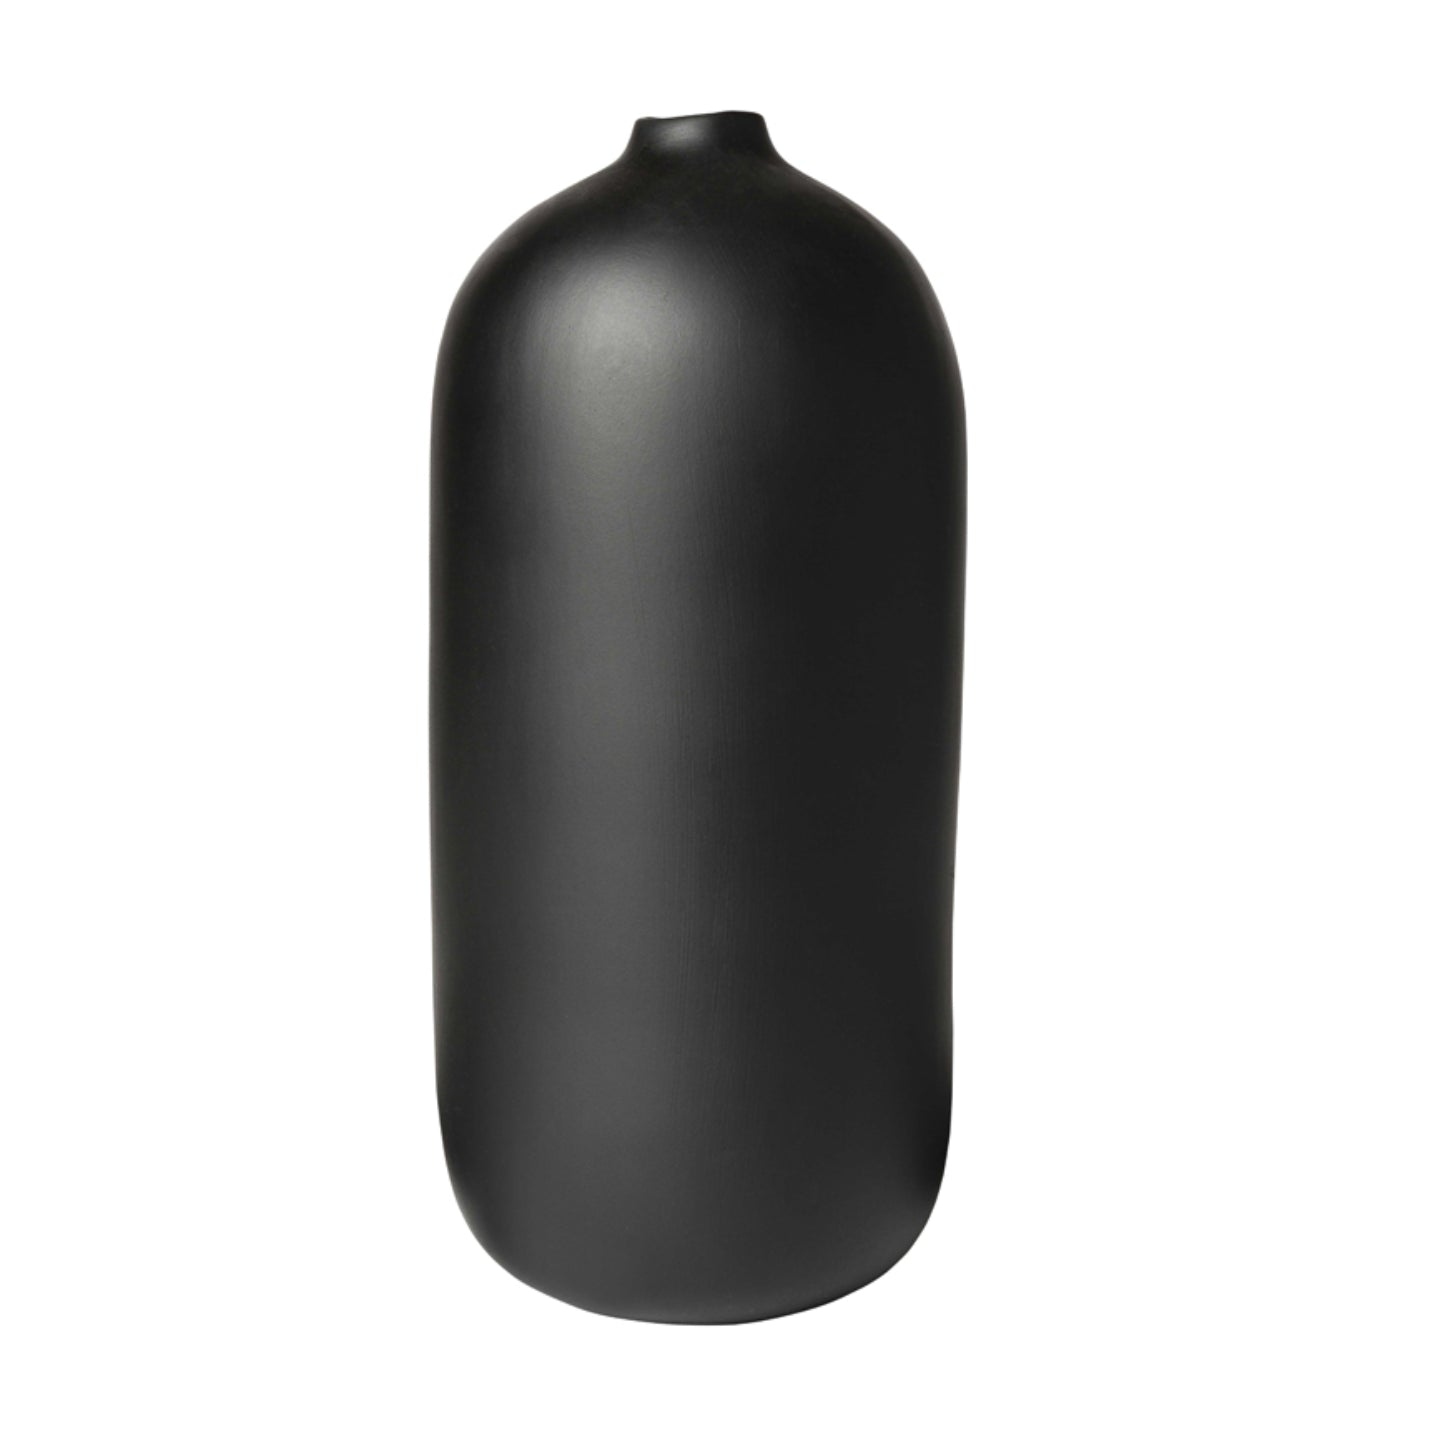 Solo Ceramic Vase | Large